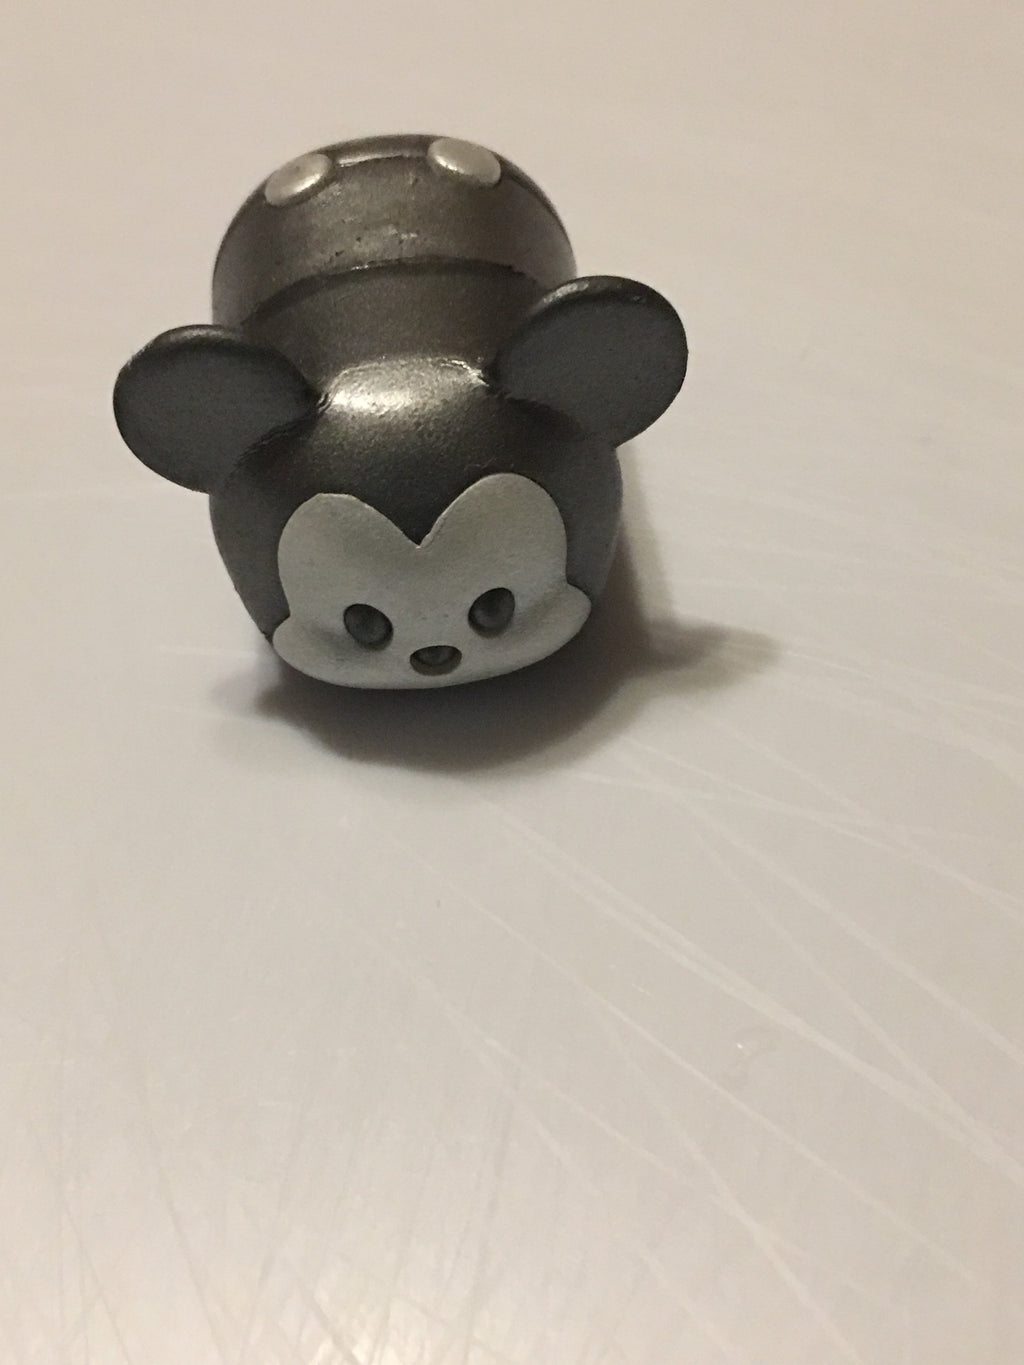 Tsum Tsum Season 9 Medium Silver Mickey - Rare & hard to find. (Item is Loose)